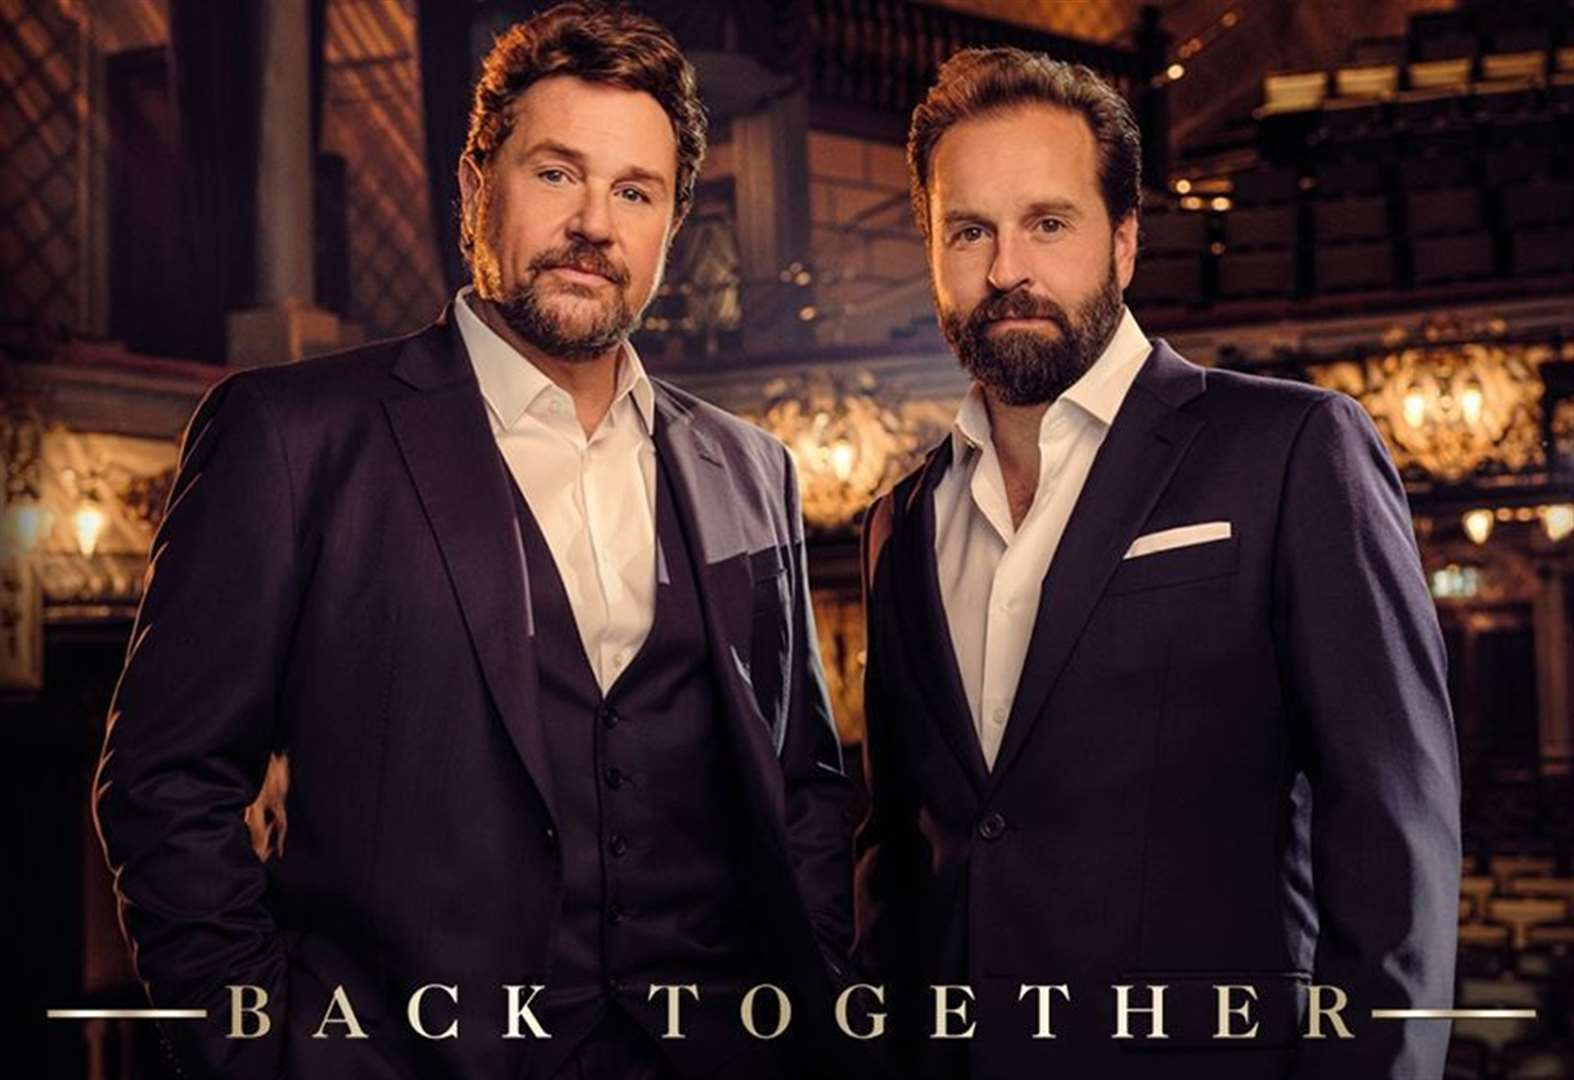 Michael Ball and Alfie Boe bring their Back Together Tour to the north-east